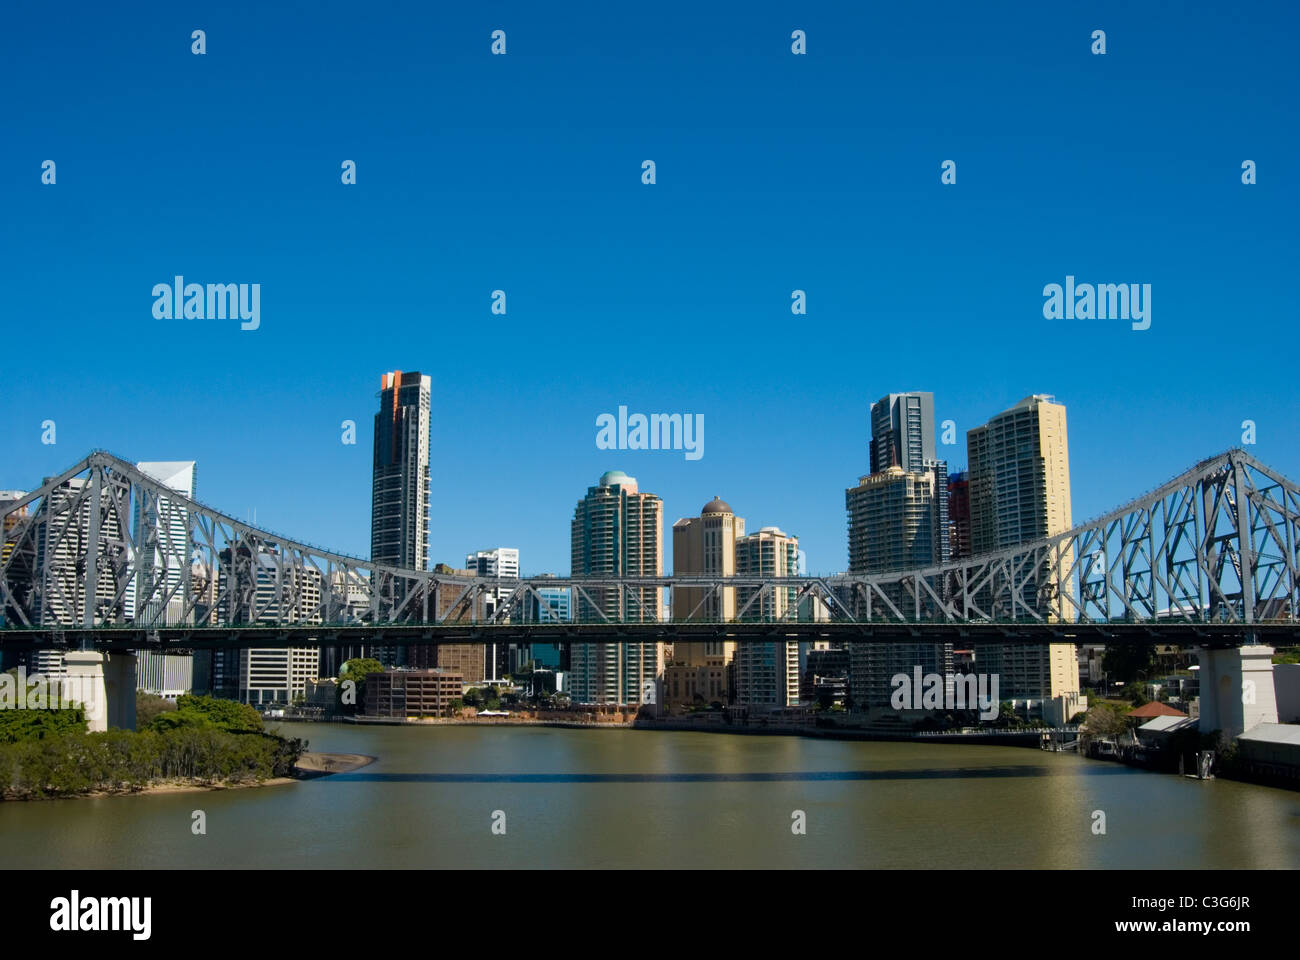 An image of Brisbane City Australia - Stock Image